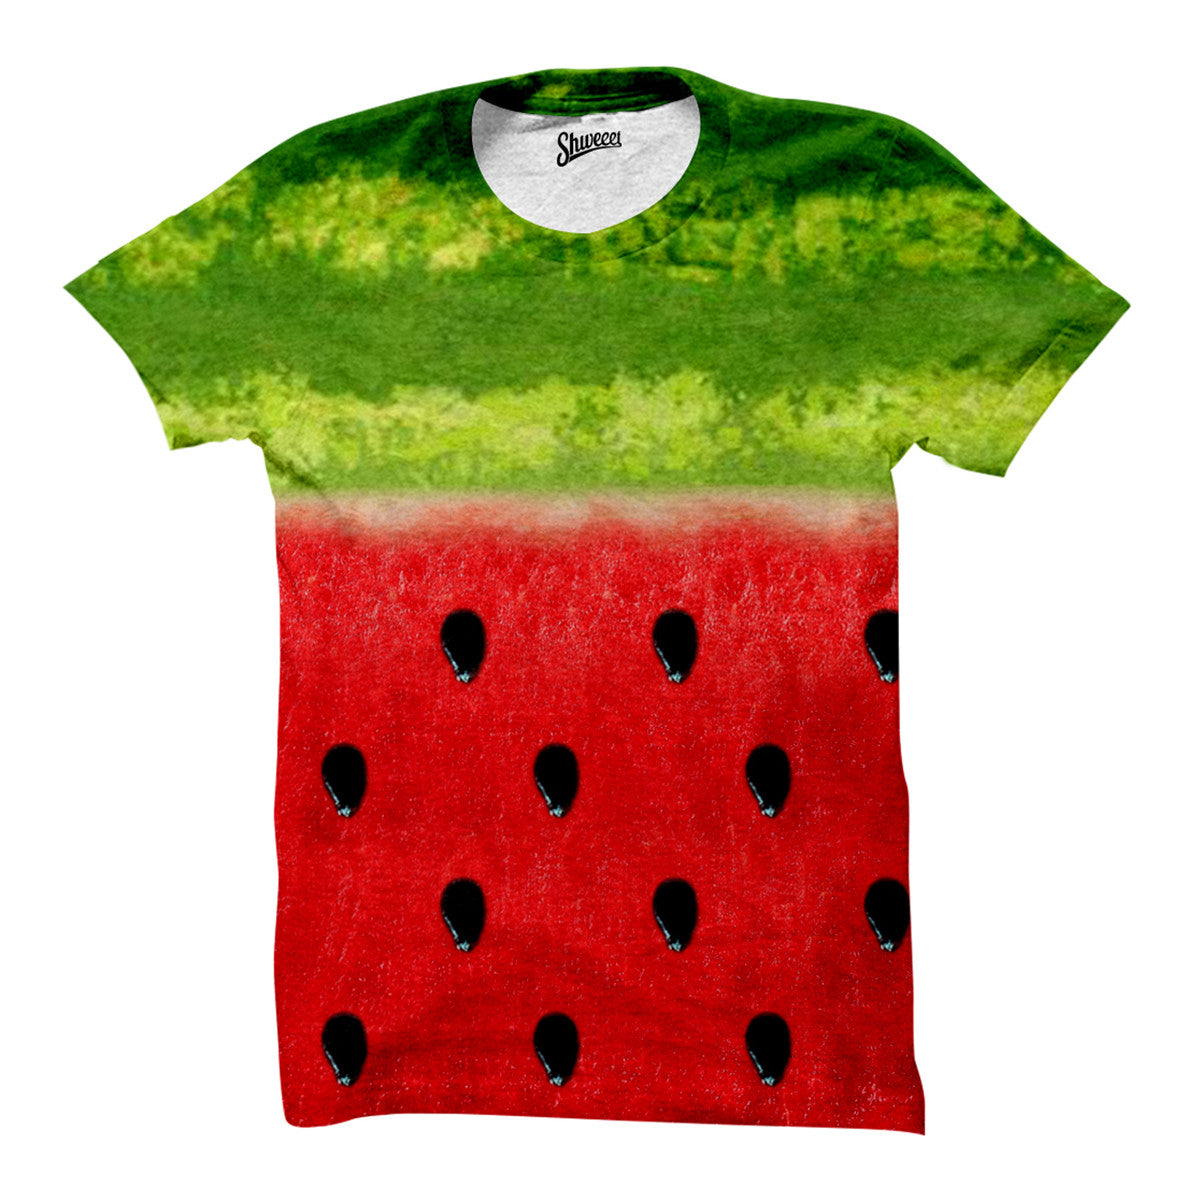 Watermelon T-shirt - Shweeet